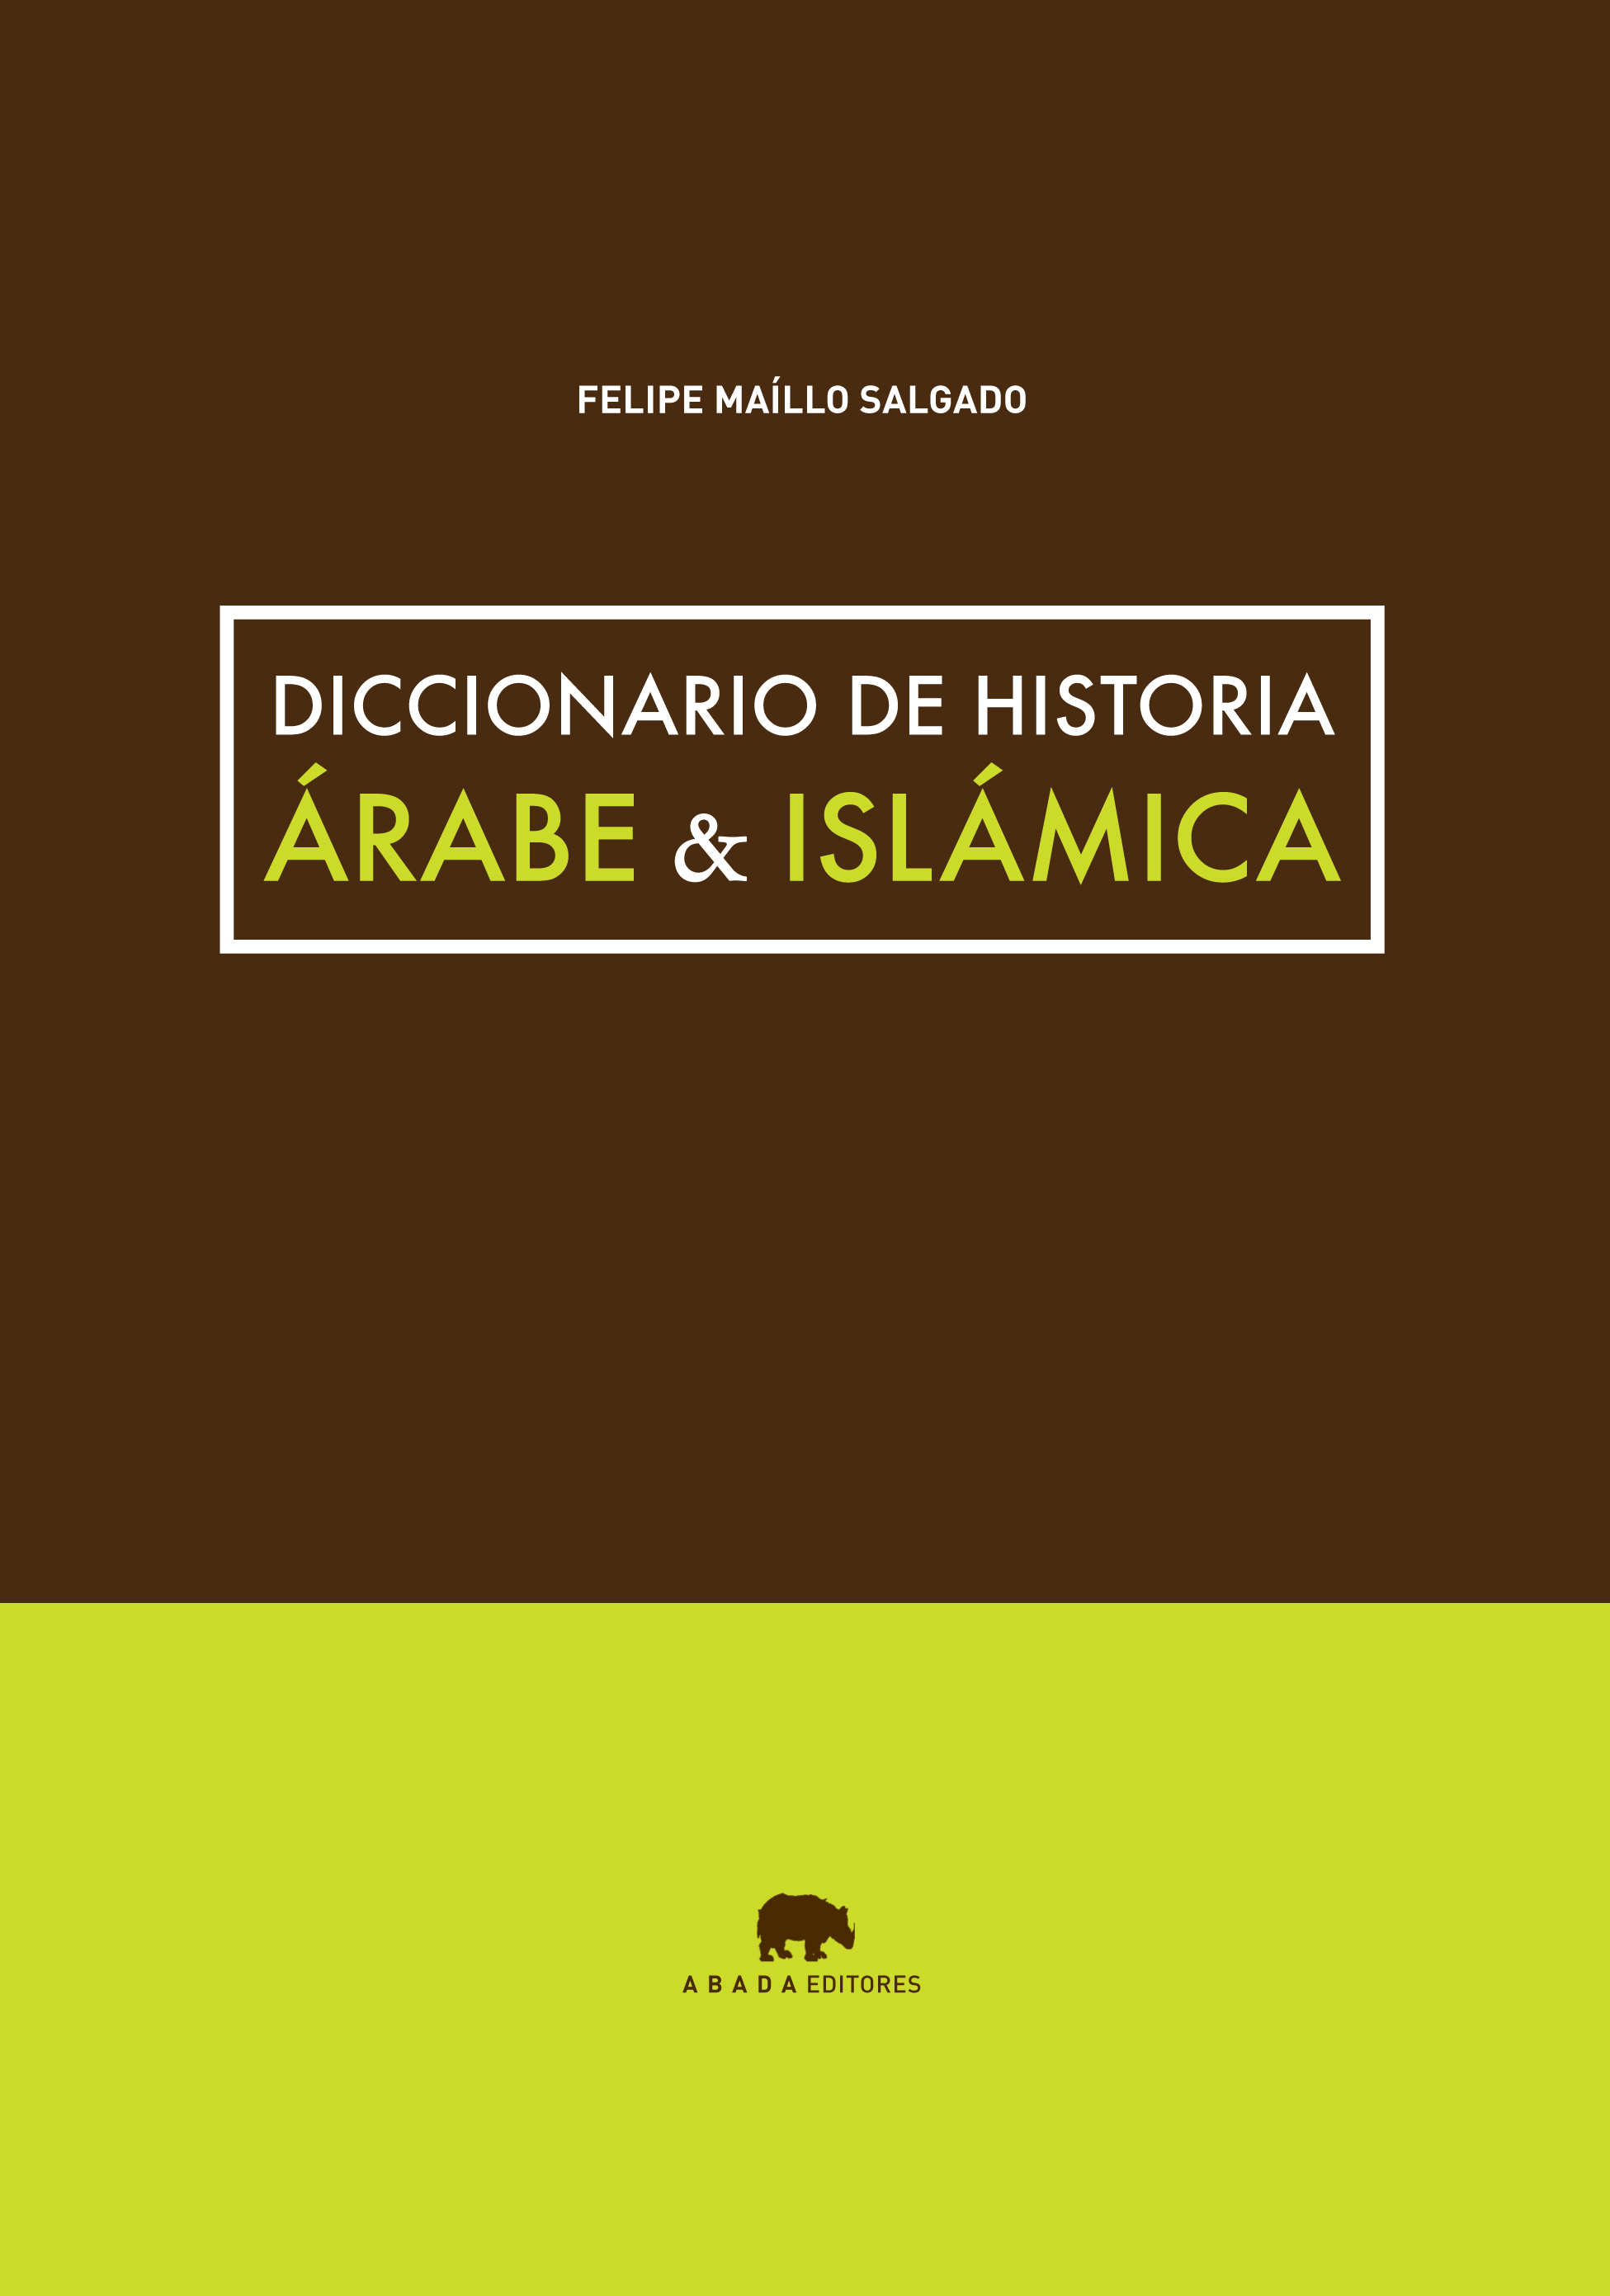 Como Descargar Libros En Kindle Descargar Diccionario De Historia Arabe And Islamica Epub